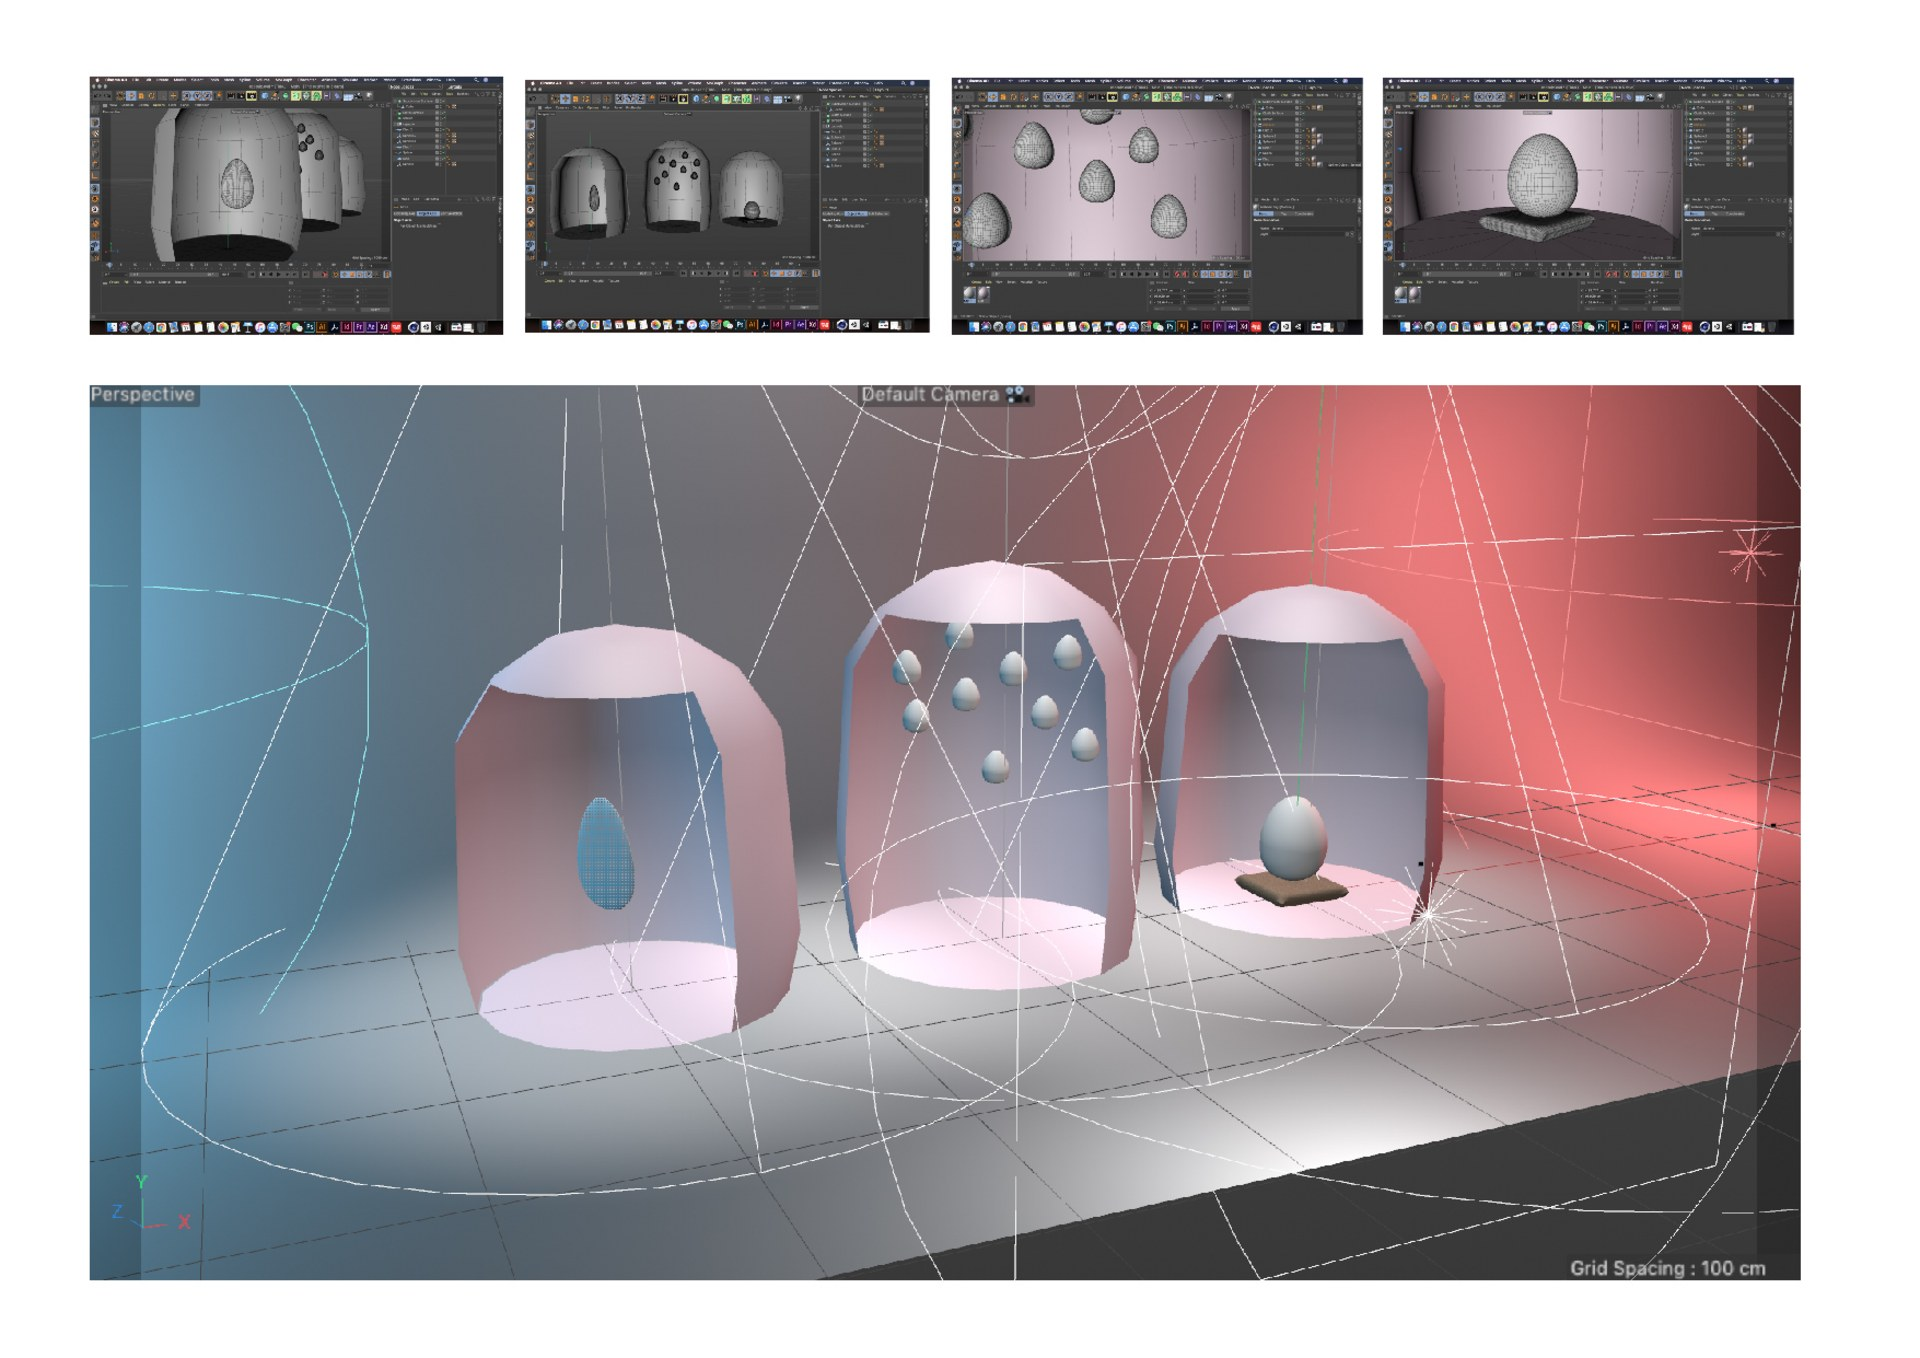 3D model of the space